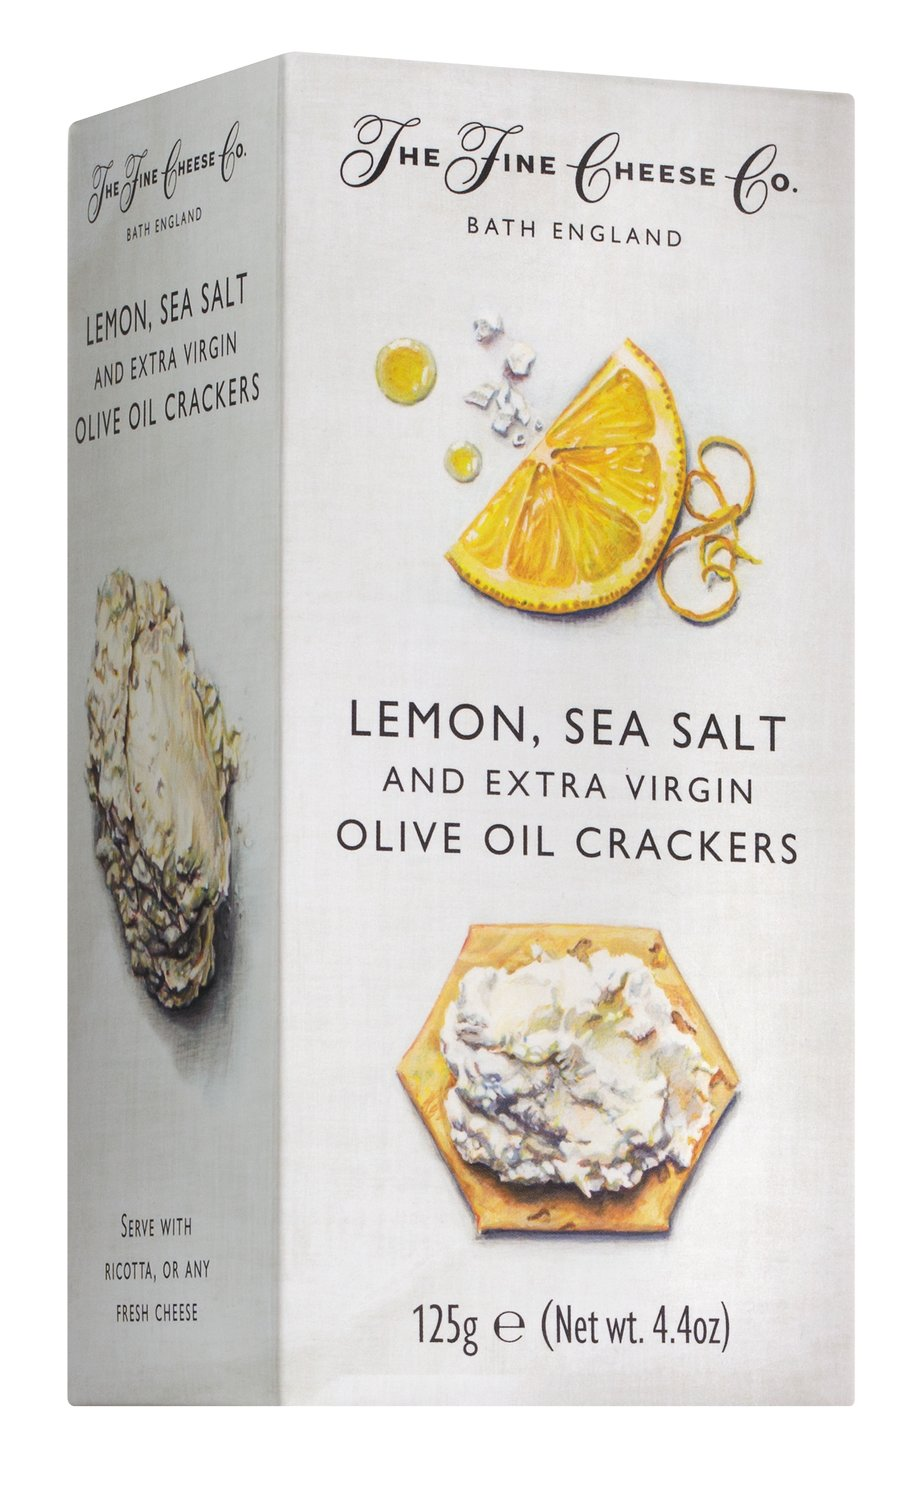 Lemon, Sea Salt & Olive Oil Crackers